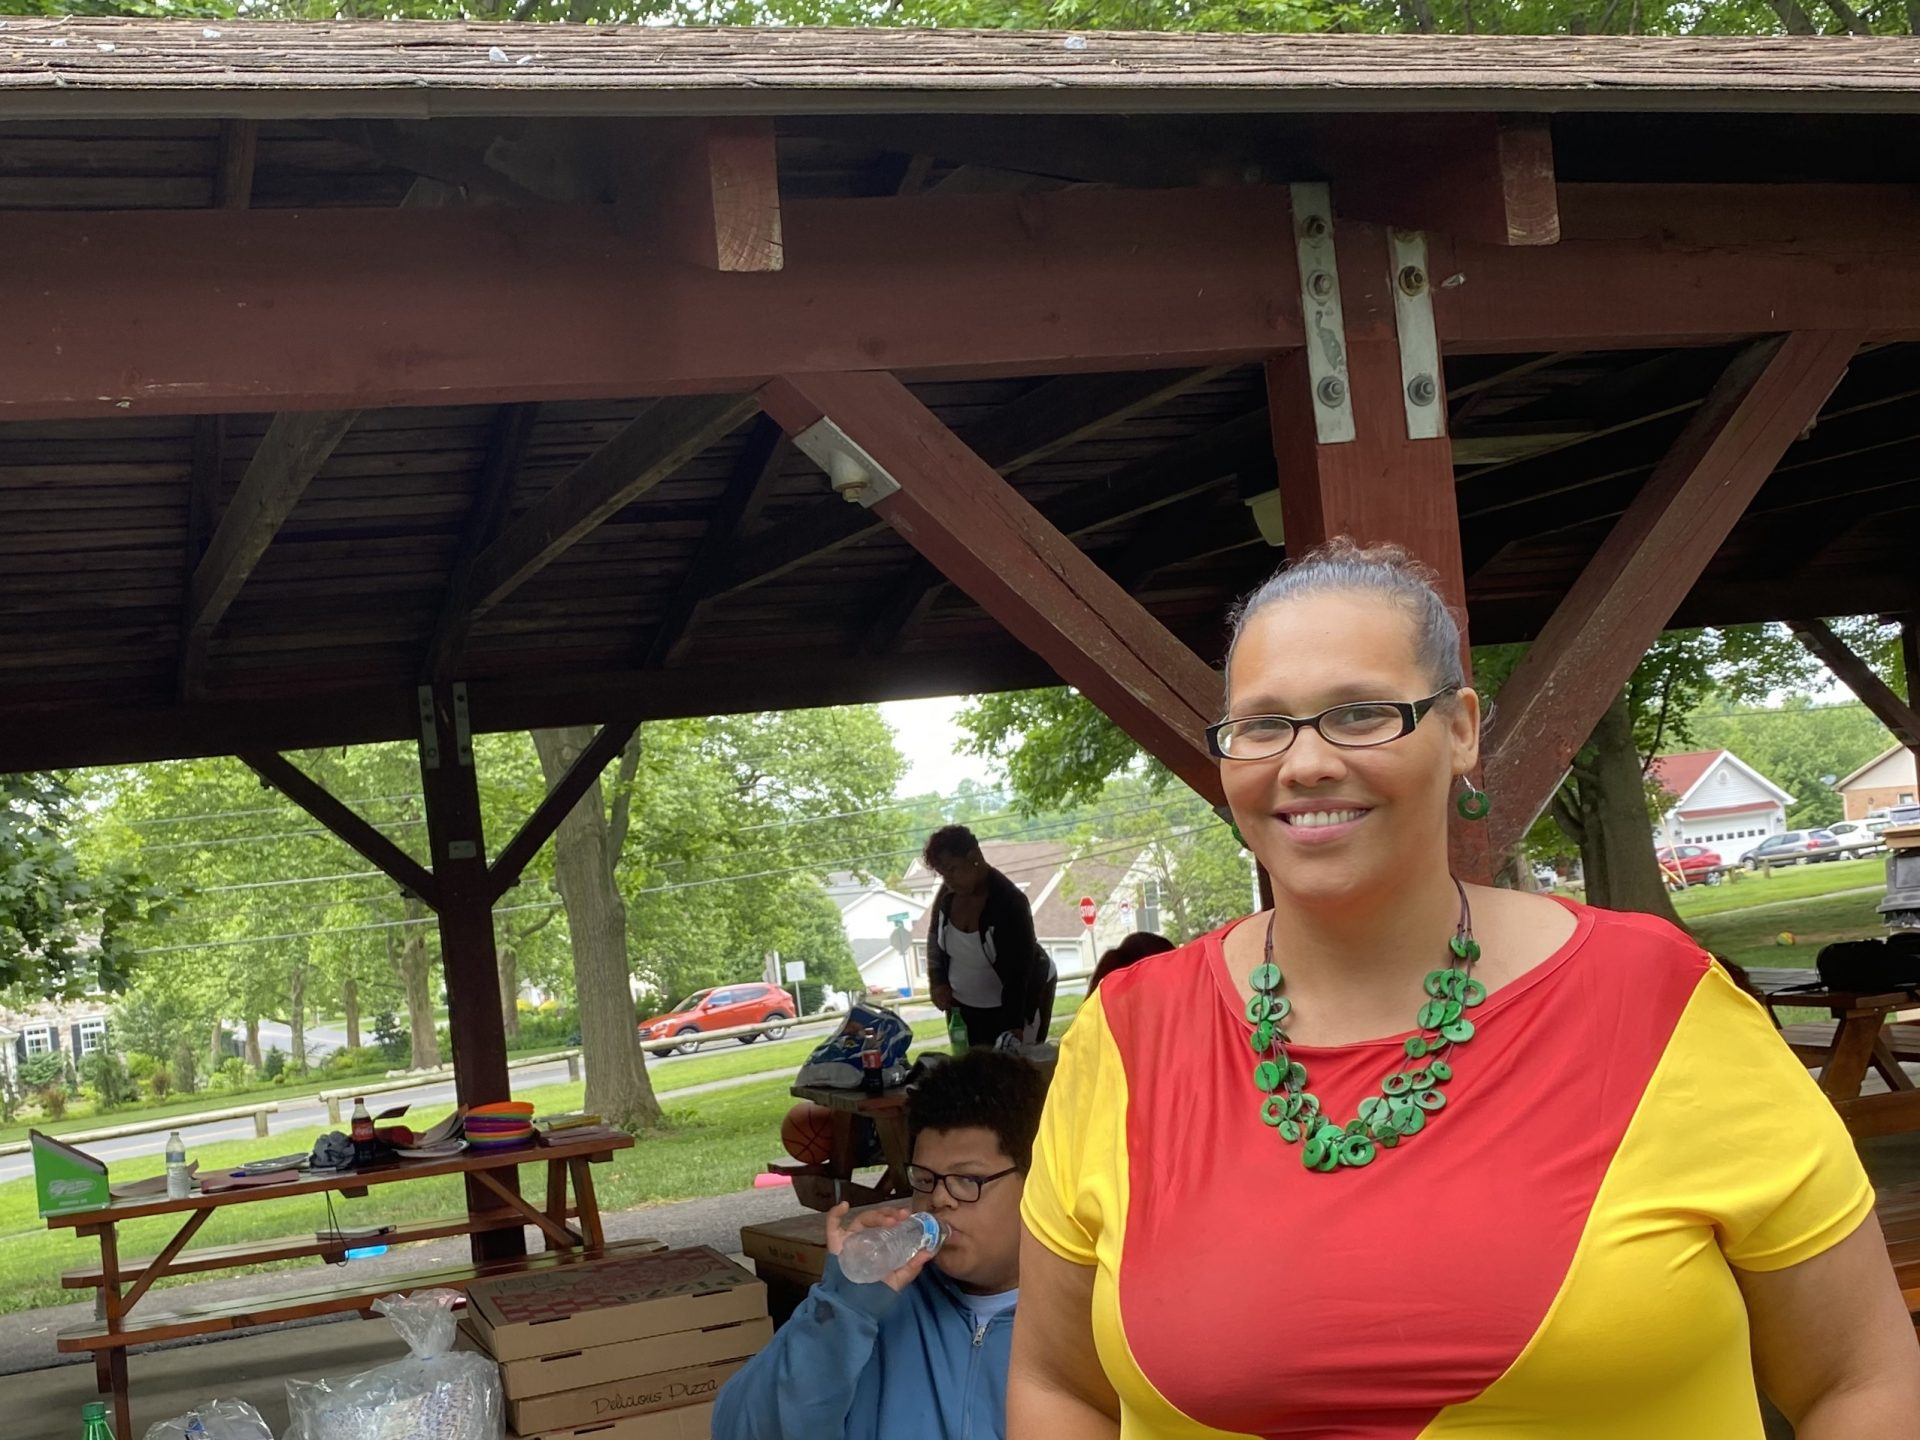 Michelle Cotton organized a small Juneteenth celebration at South Hills Park in Lebanon.